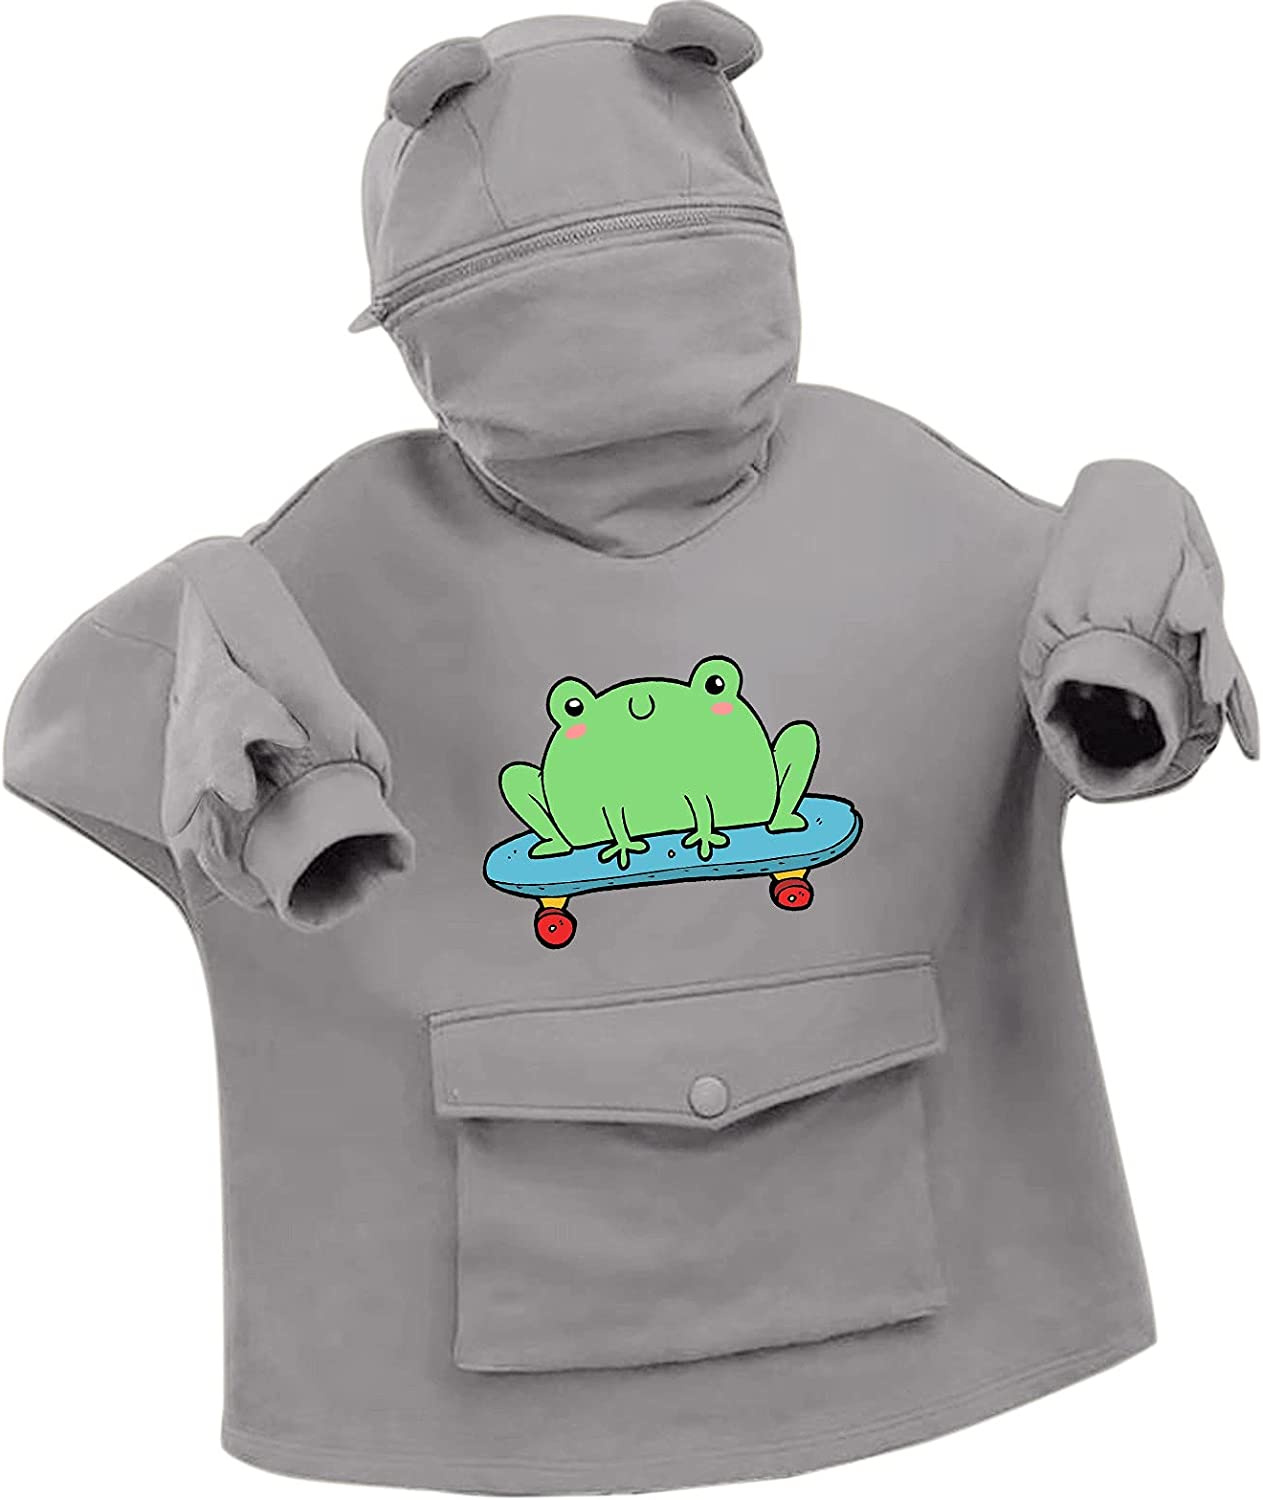 Dallas Mall Sales of SALE items from new works Lousioa Women's Stitching Three-Dimensional Print Frog Sweatersh